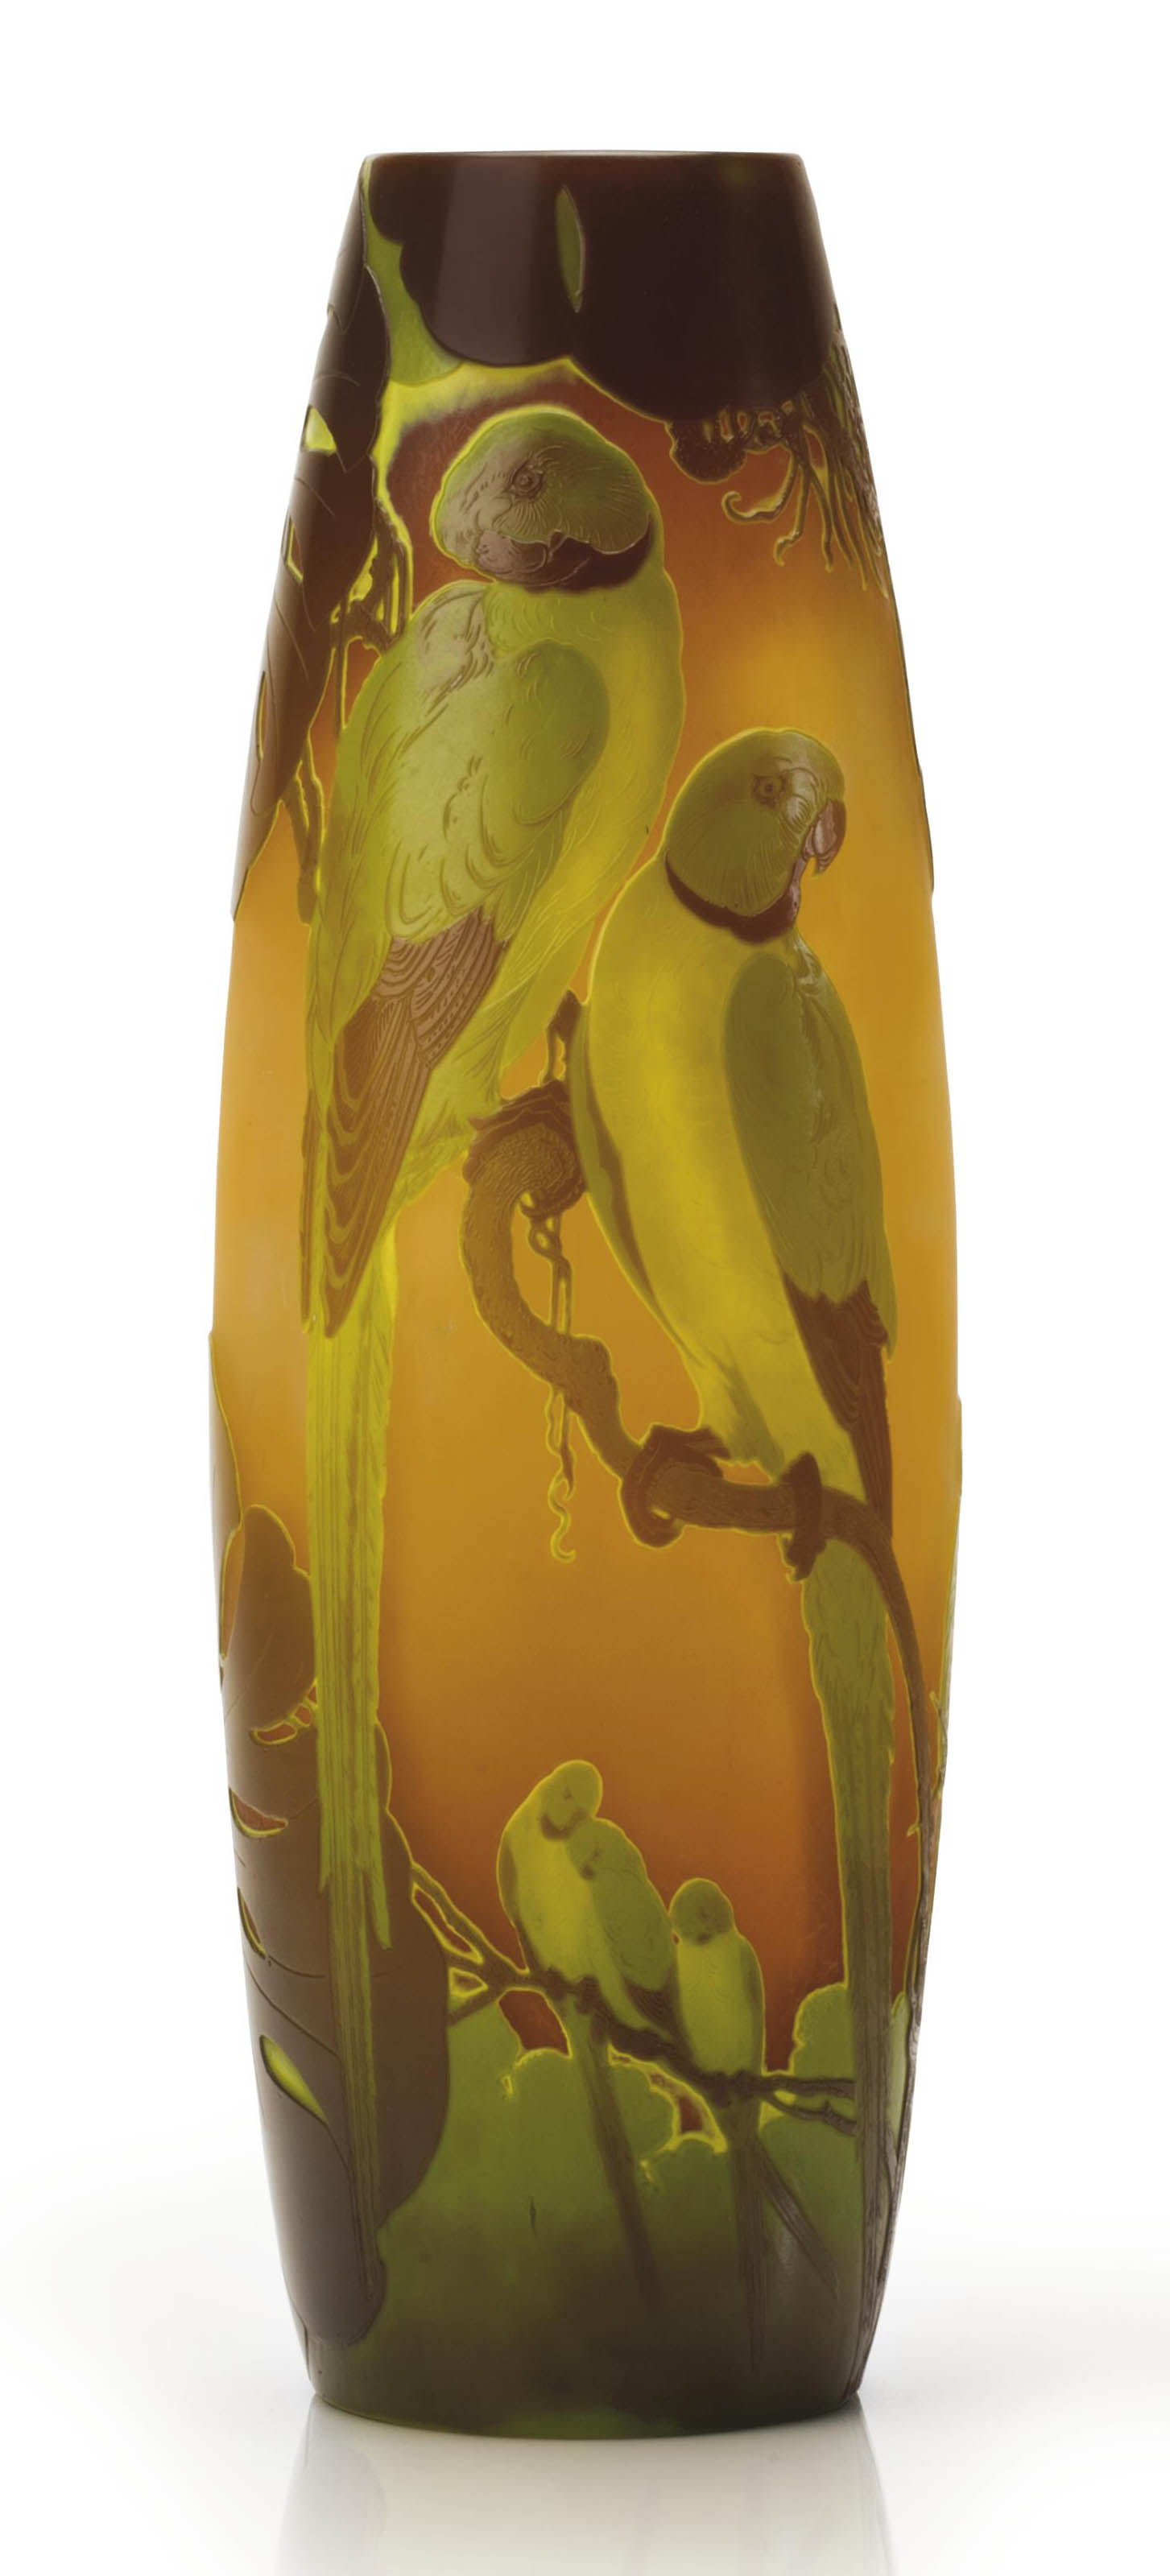 A LARGE FRENCH 'PARROT' CAMEO GLASS VASE